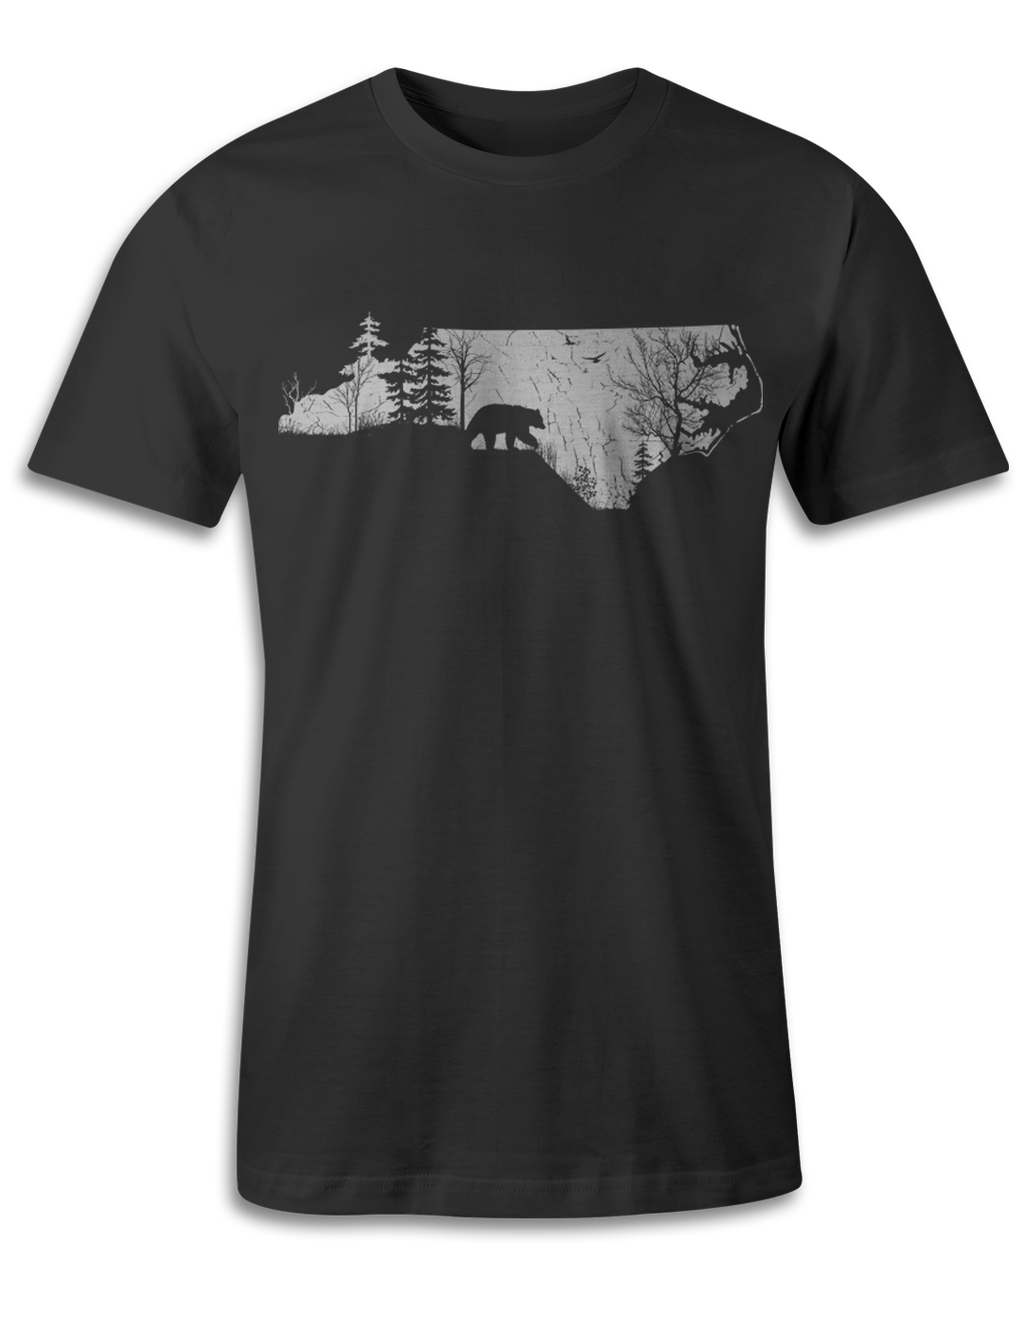 North Carolina - Animal In The Woods - Unisex Tee